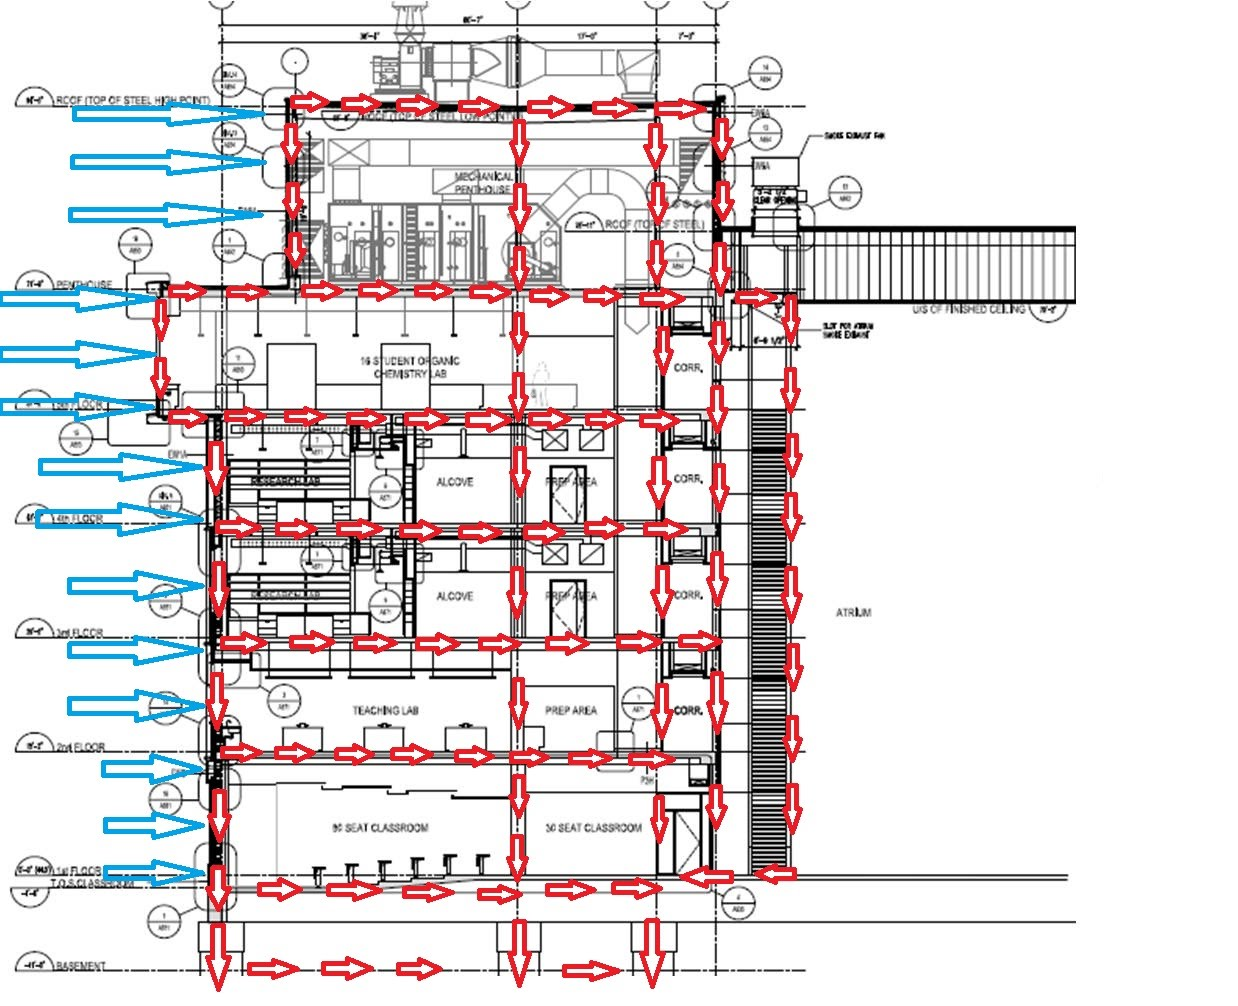 Load Path Diagrams  Papadakis Integrated Sciences Building, Drexel University